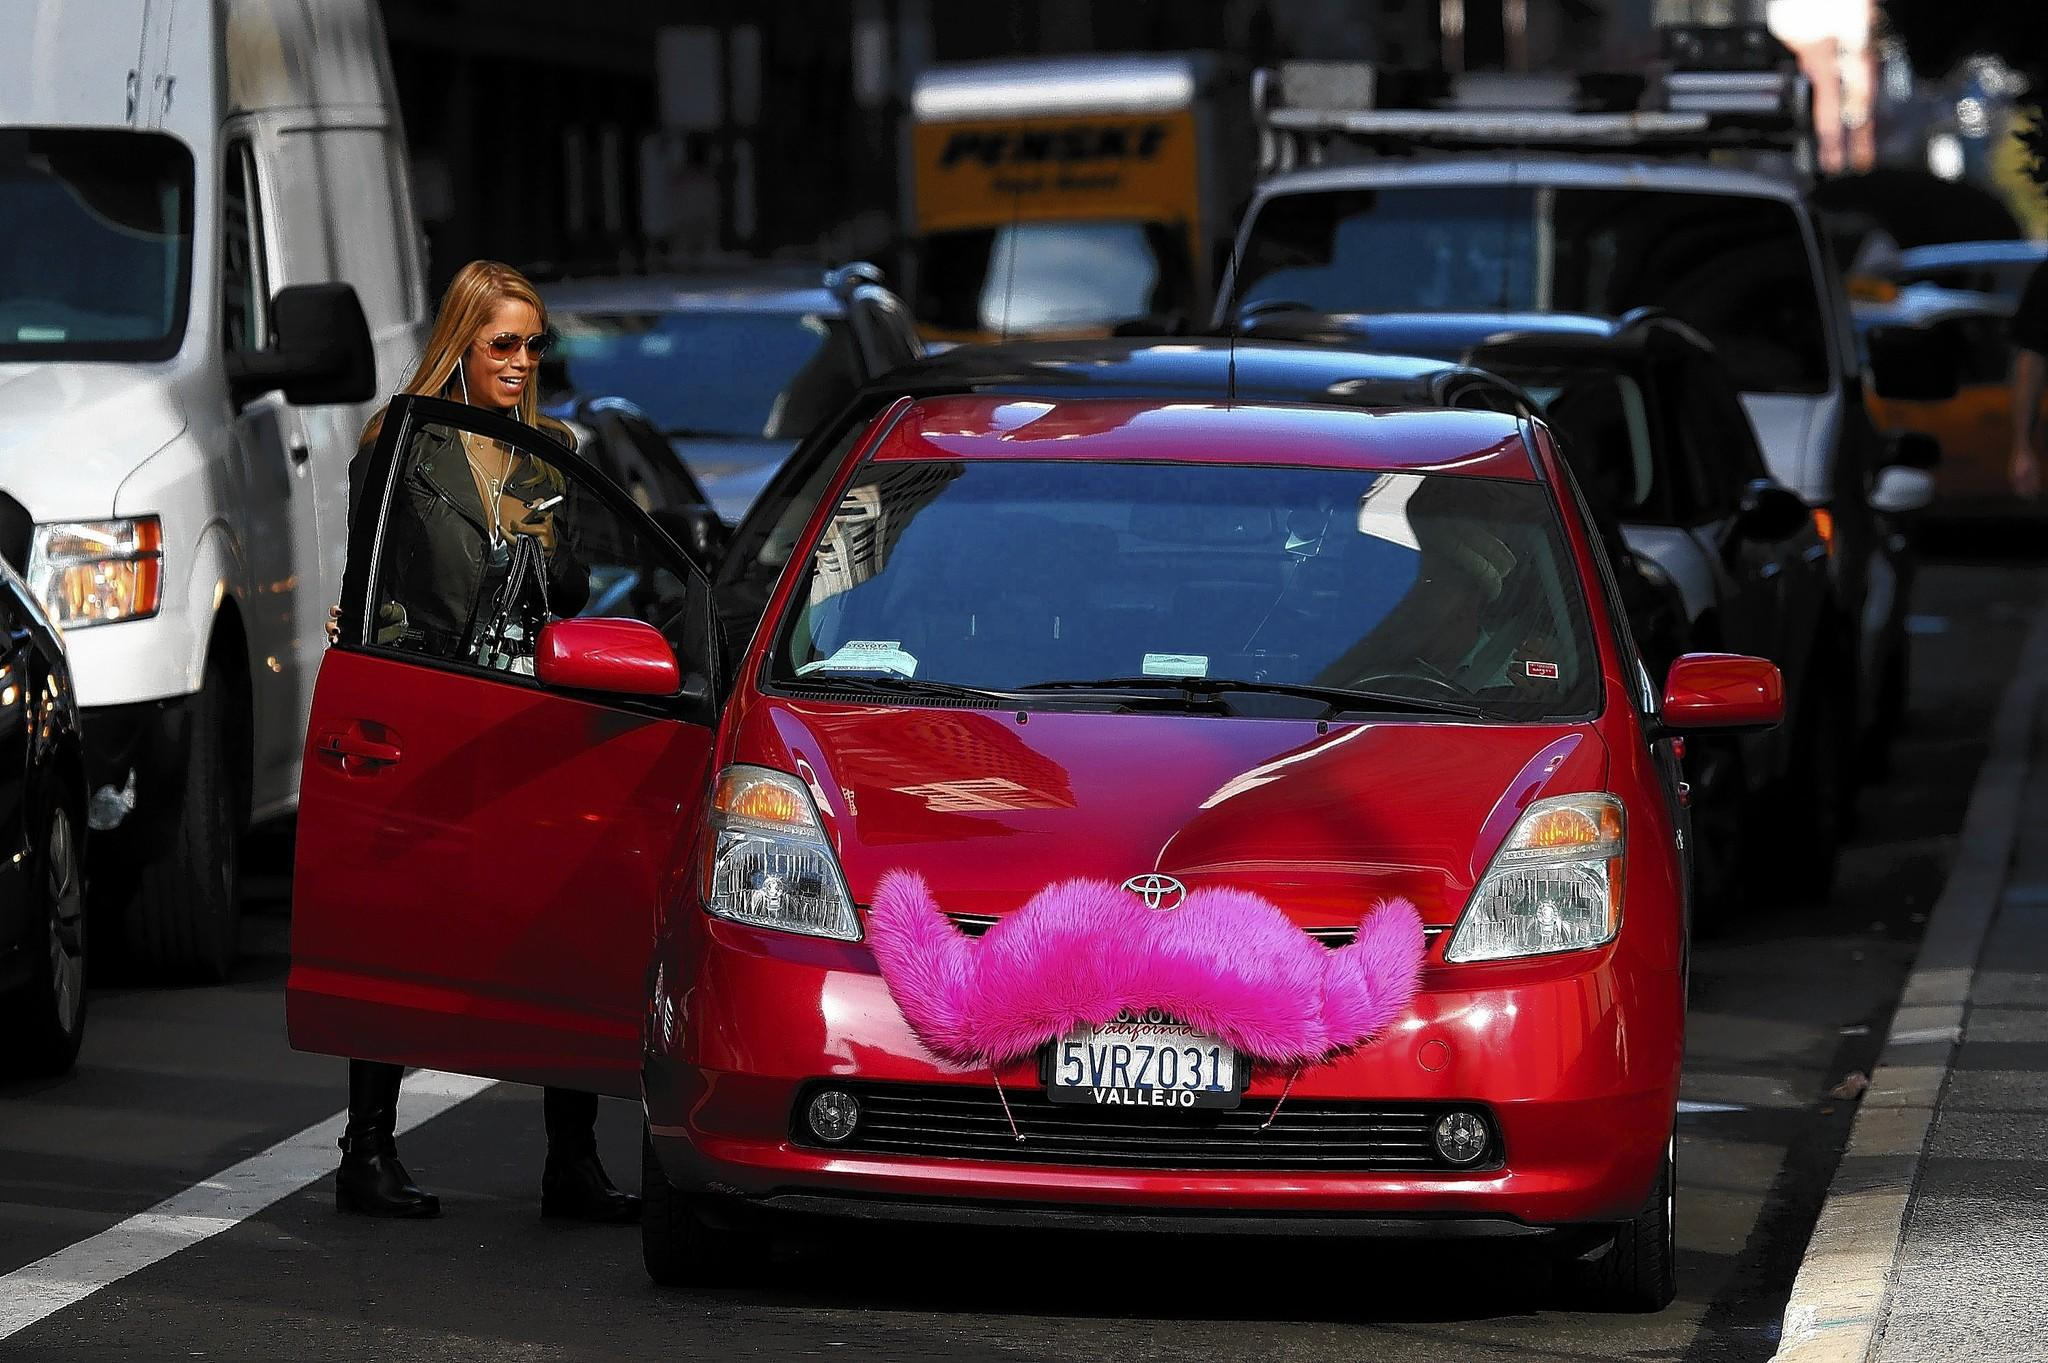 California regulator warns about gaps in ride sharing insurance